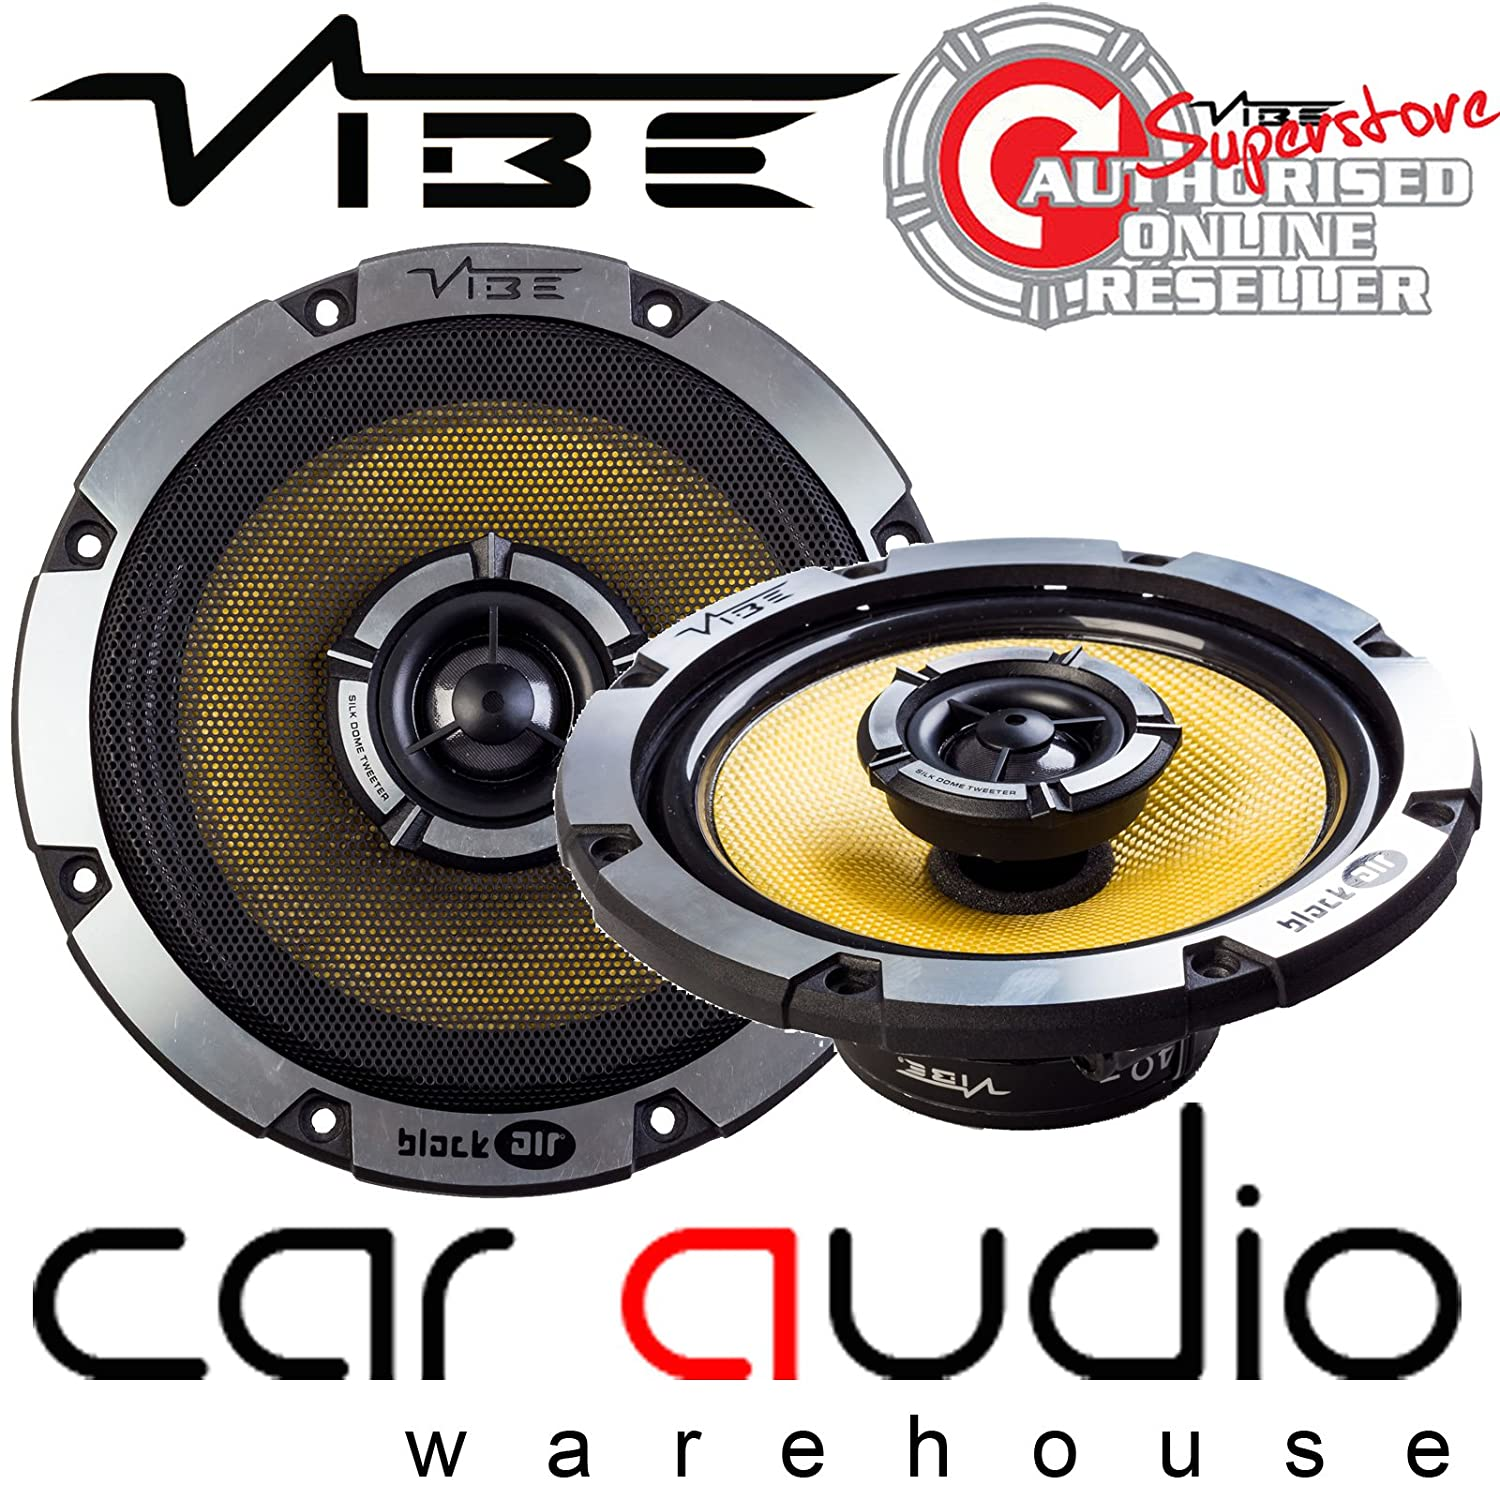 VIBE BLACKAIR 5 - 480 Watts a Pair 5.25' inch 13cm Co-axial Car Van Door Speakers BLACKAIR 5 COAXIAL